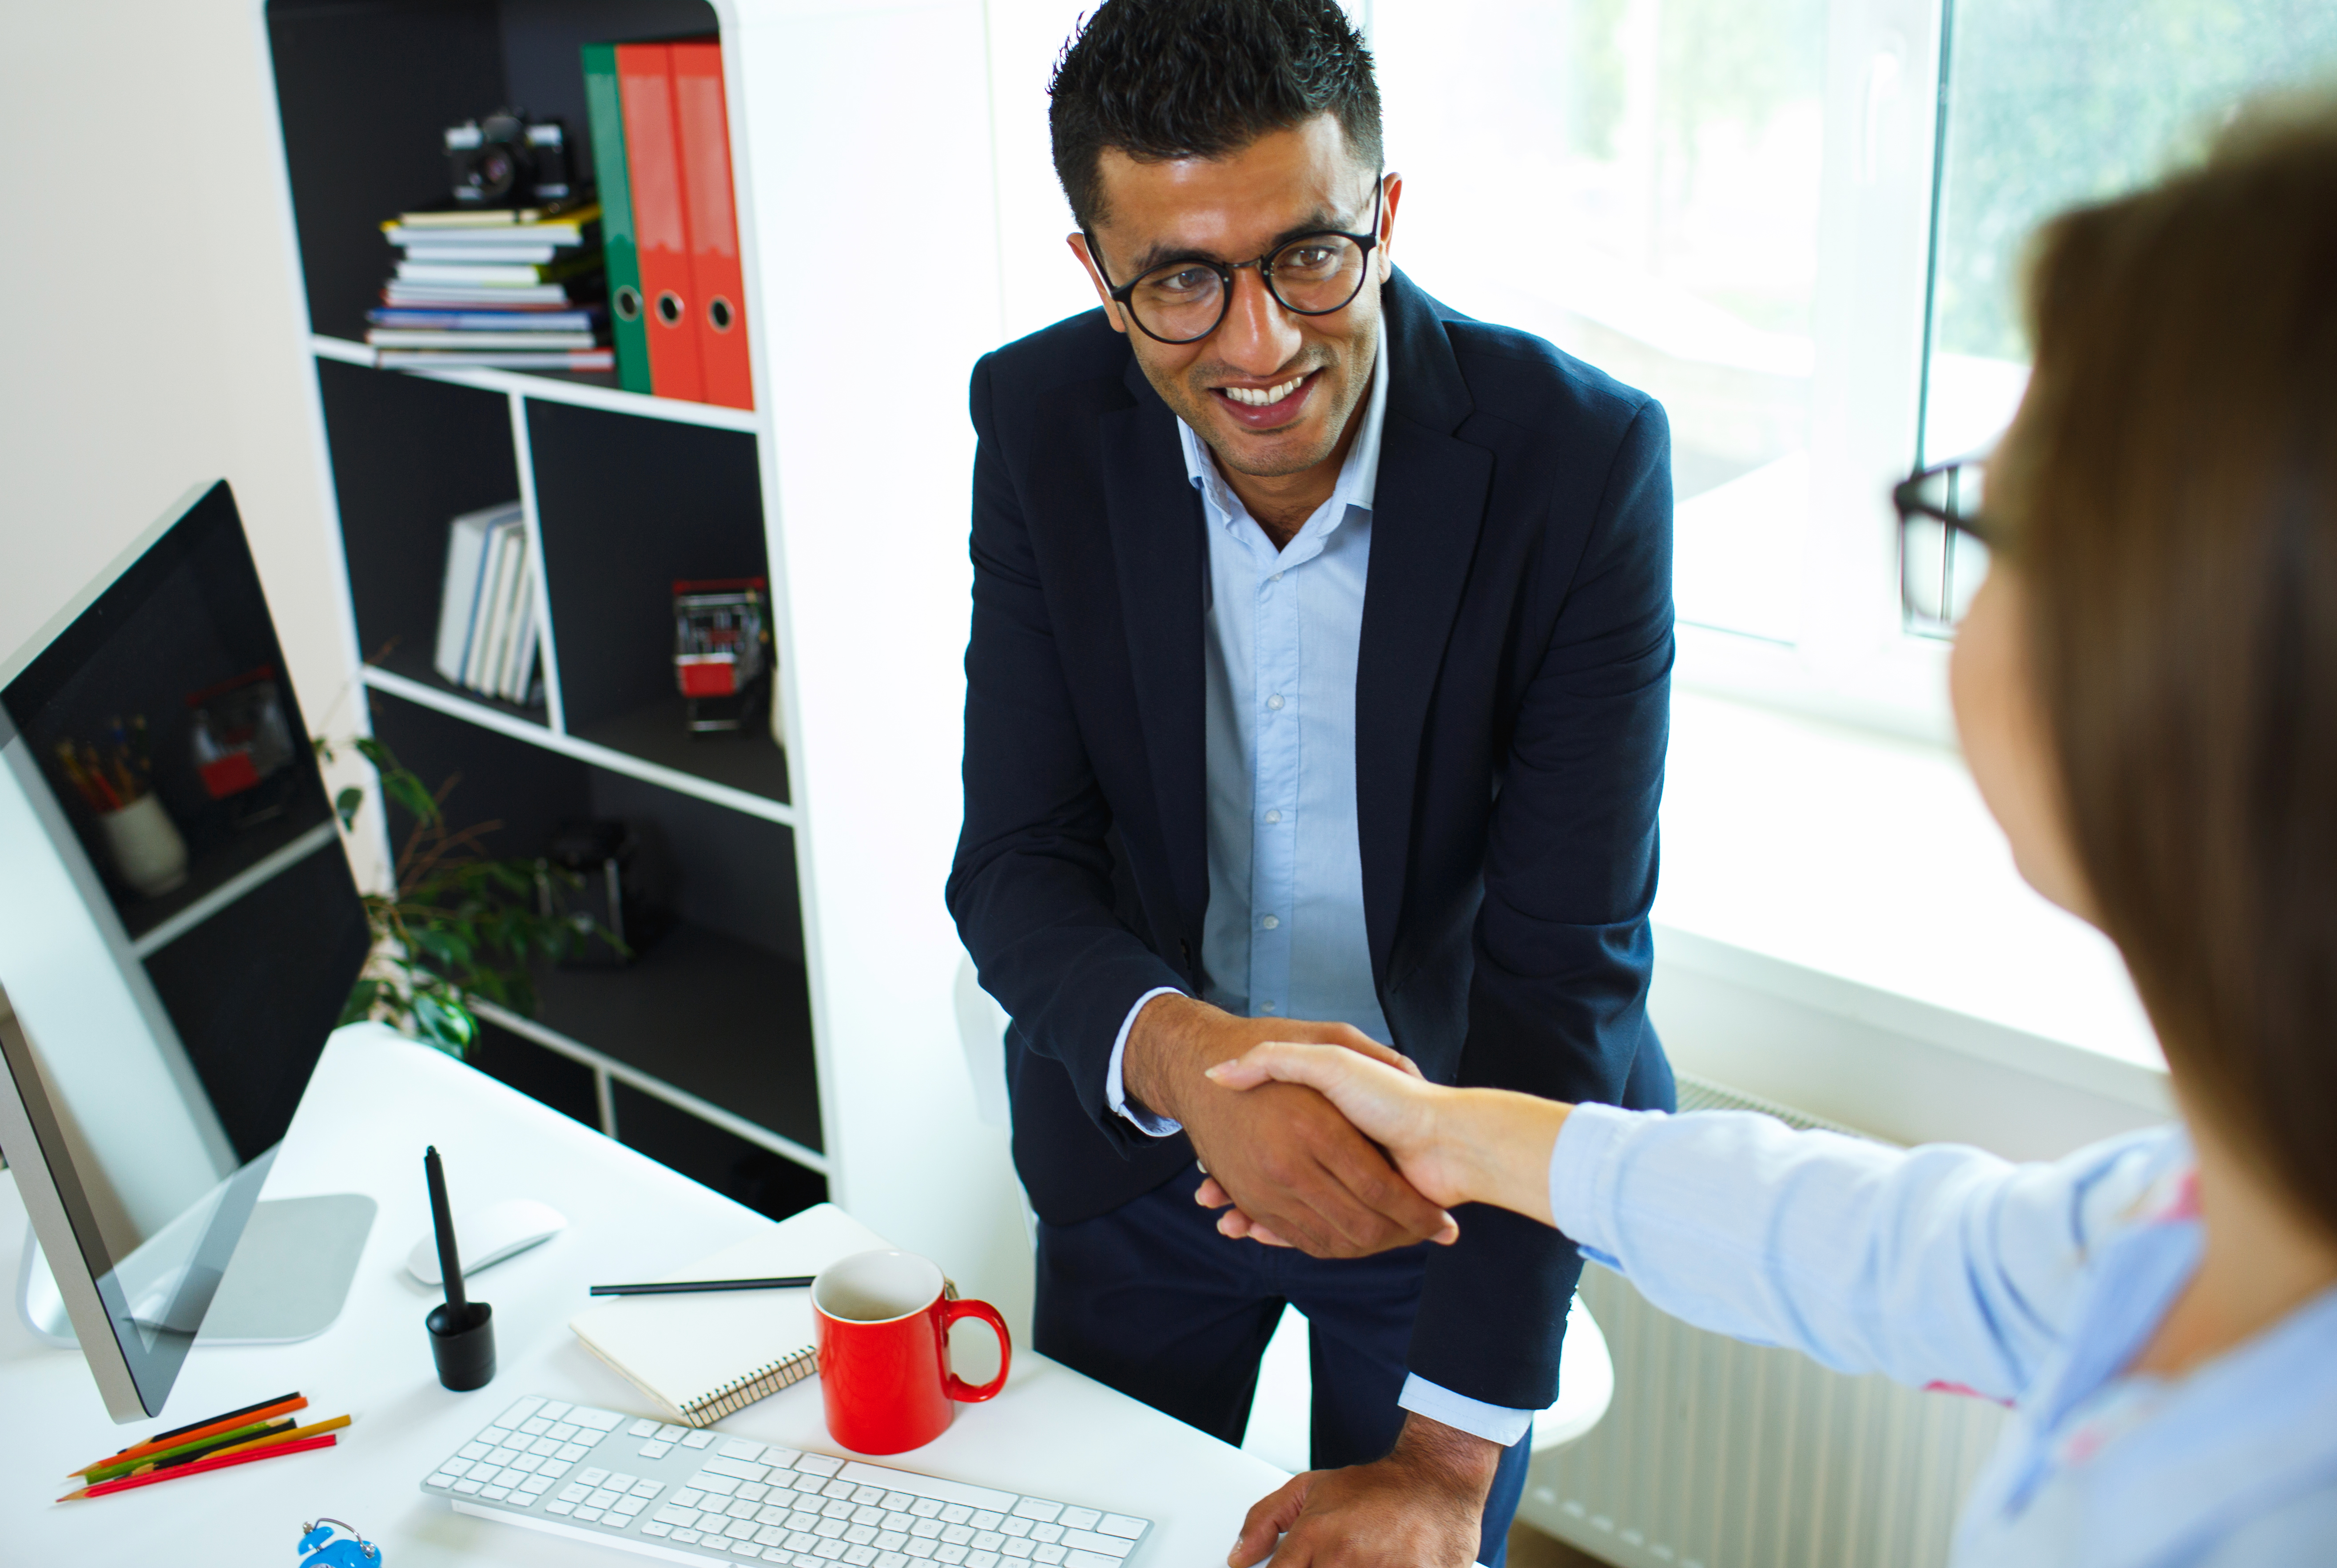 Young businessman and woman shaking hands in office